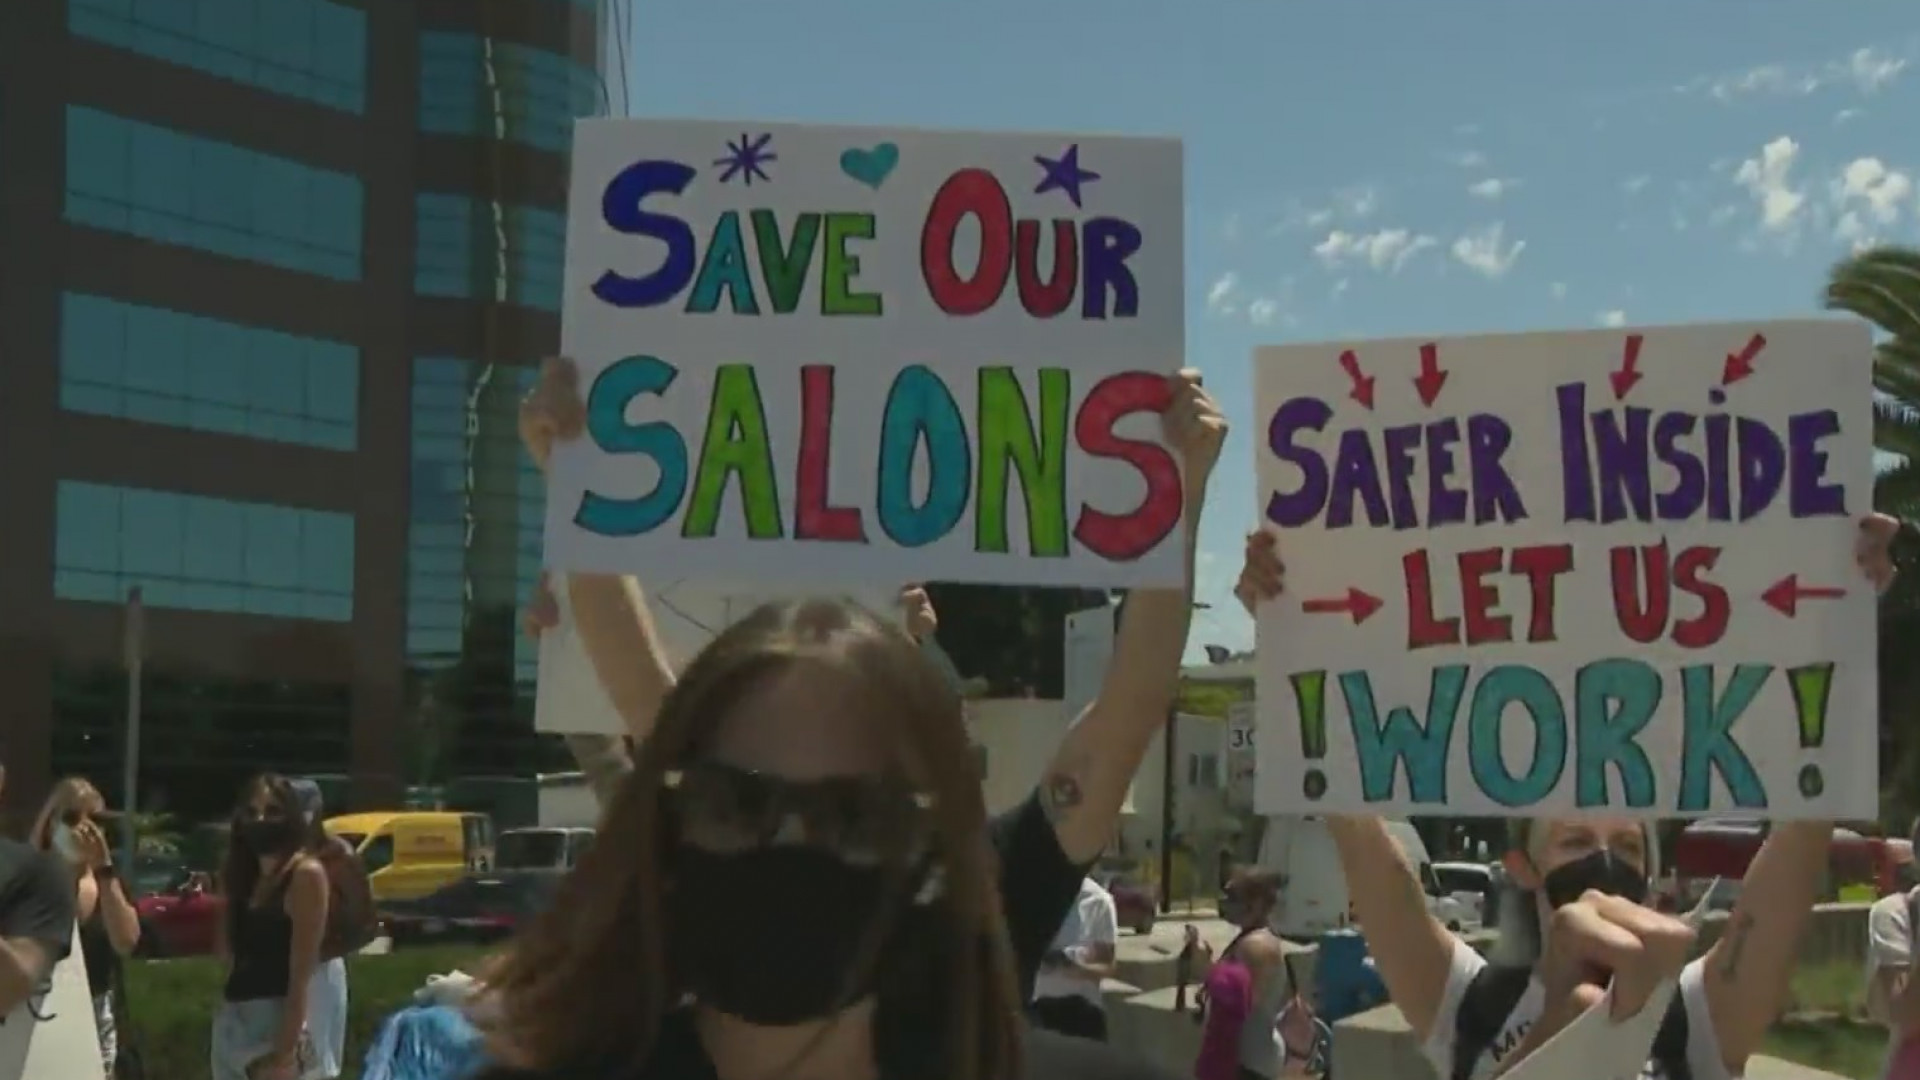 Salon owners and hair stylists protests pandemic-related restrictions during a demonstration in Westwood on Aug. 12, 2020. (KTLA)